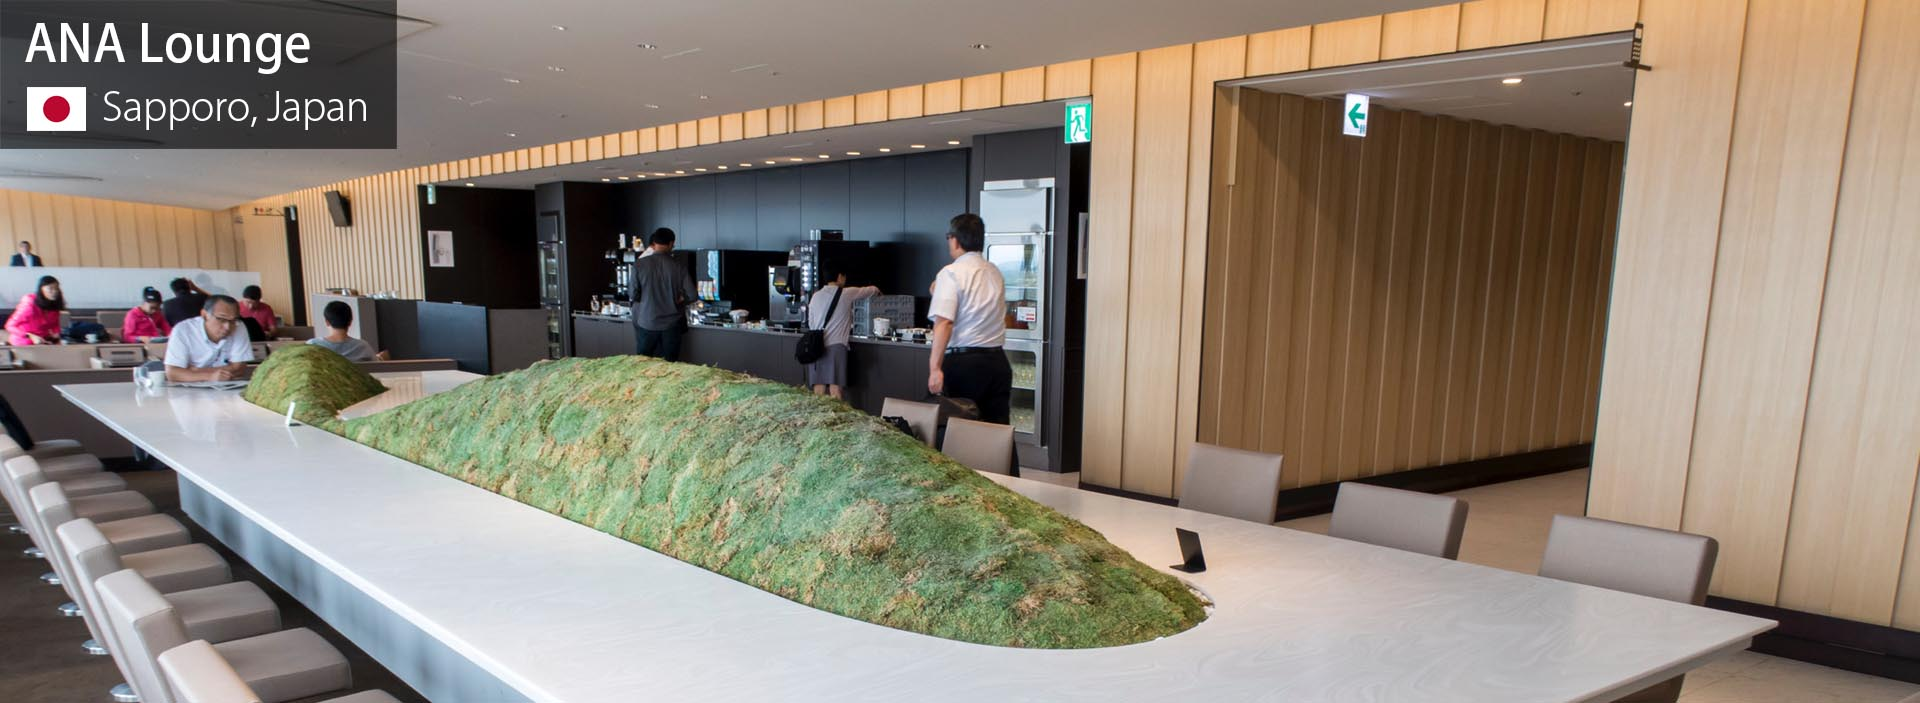 ANA Lounge Sapporo Review